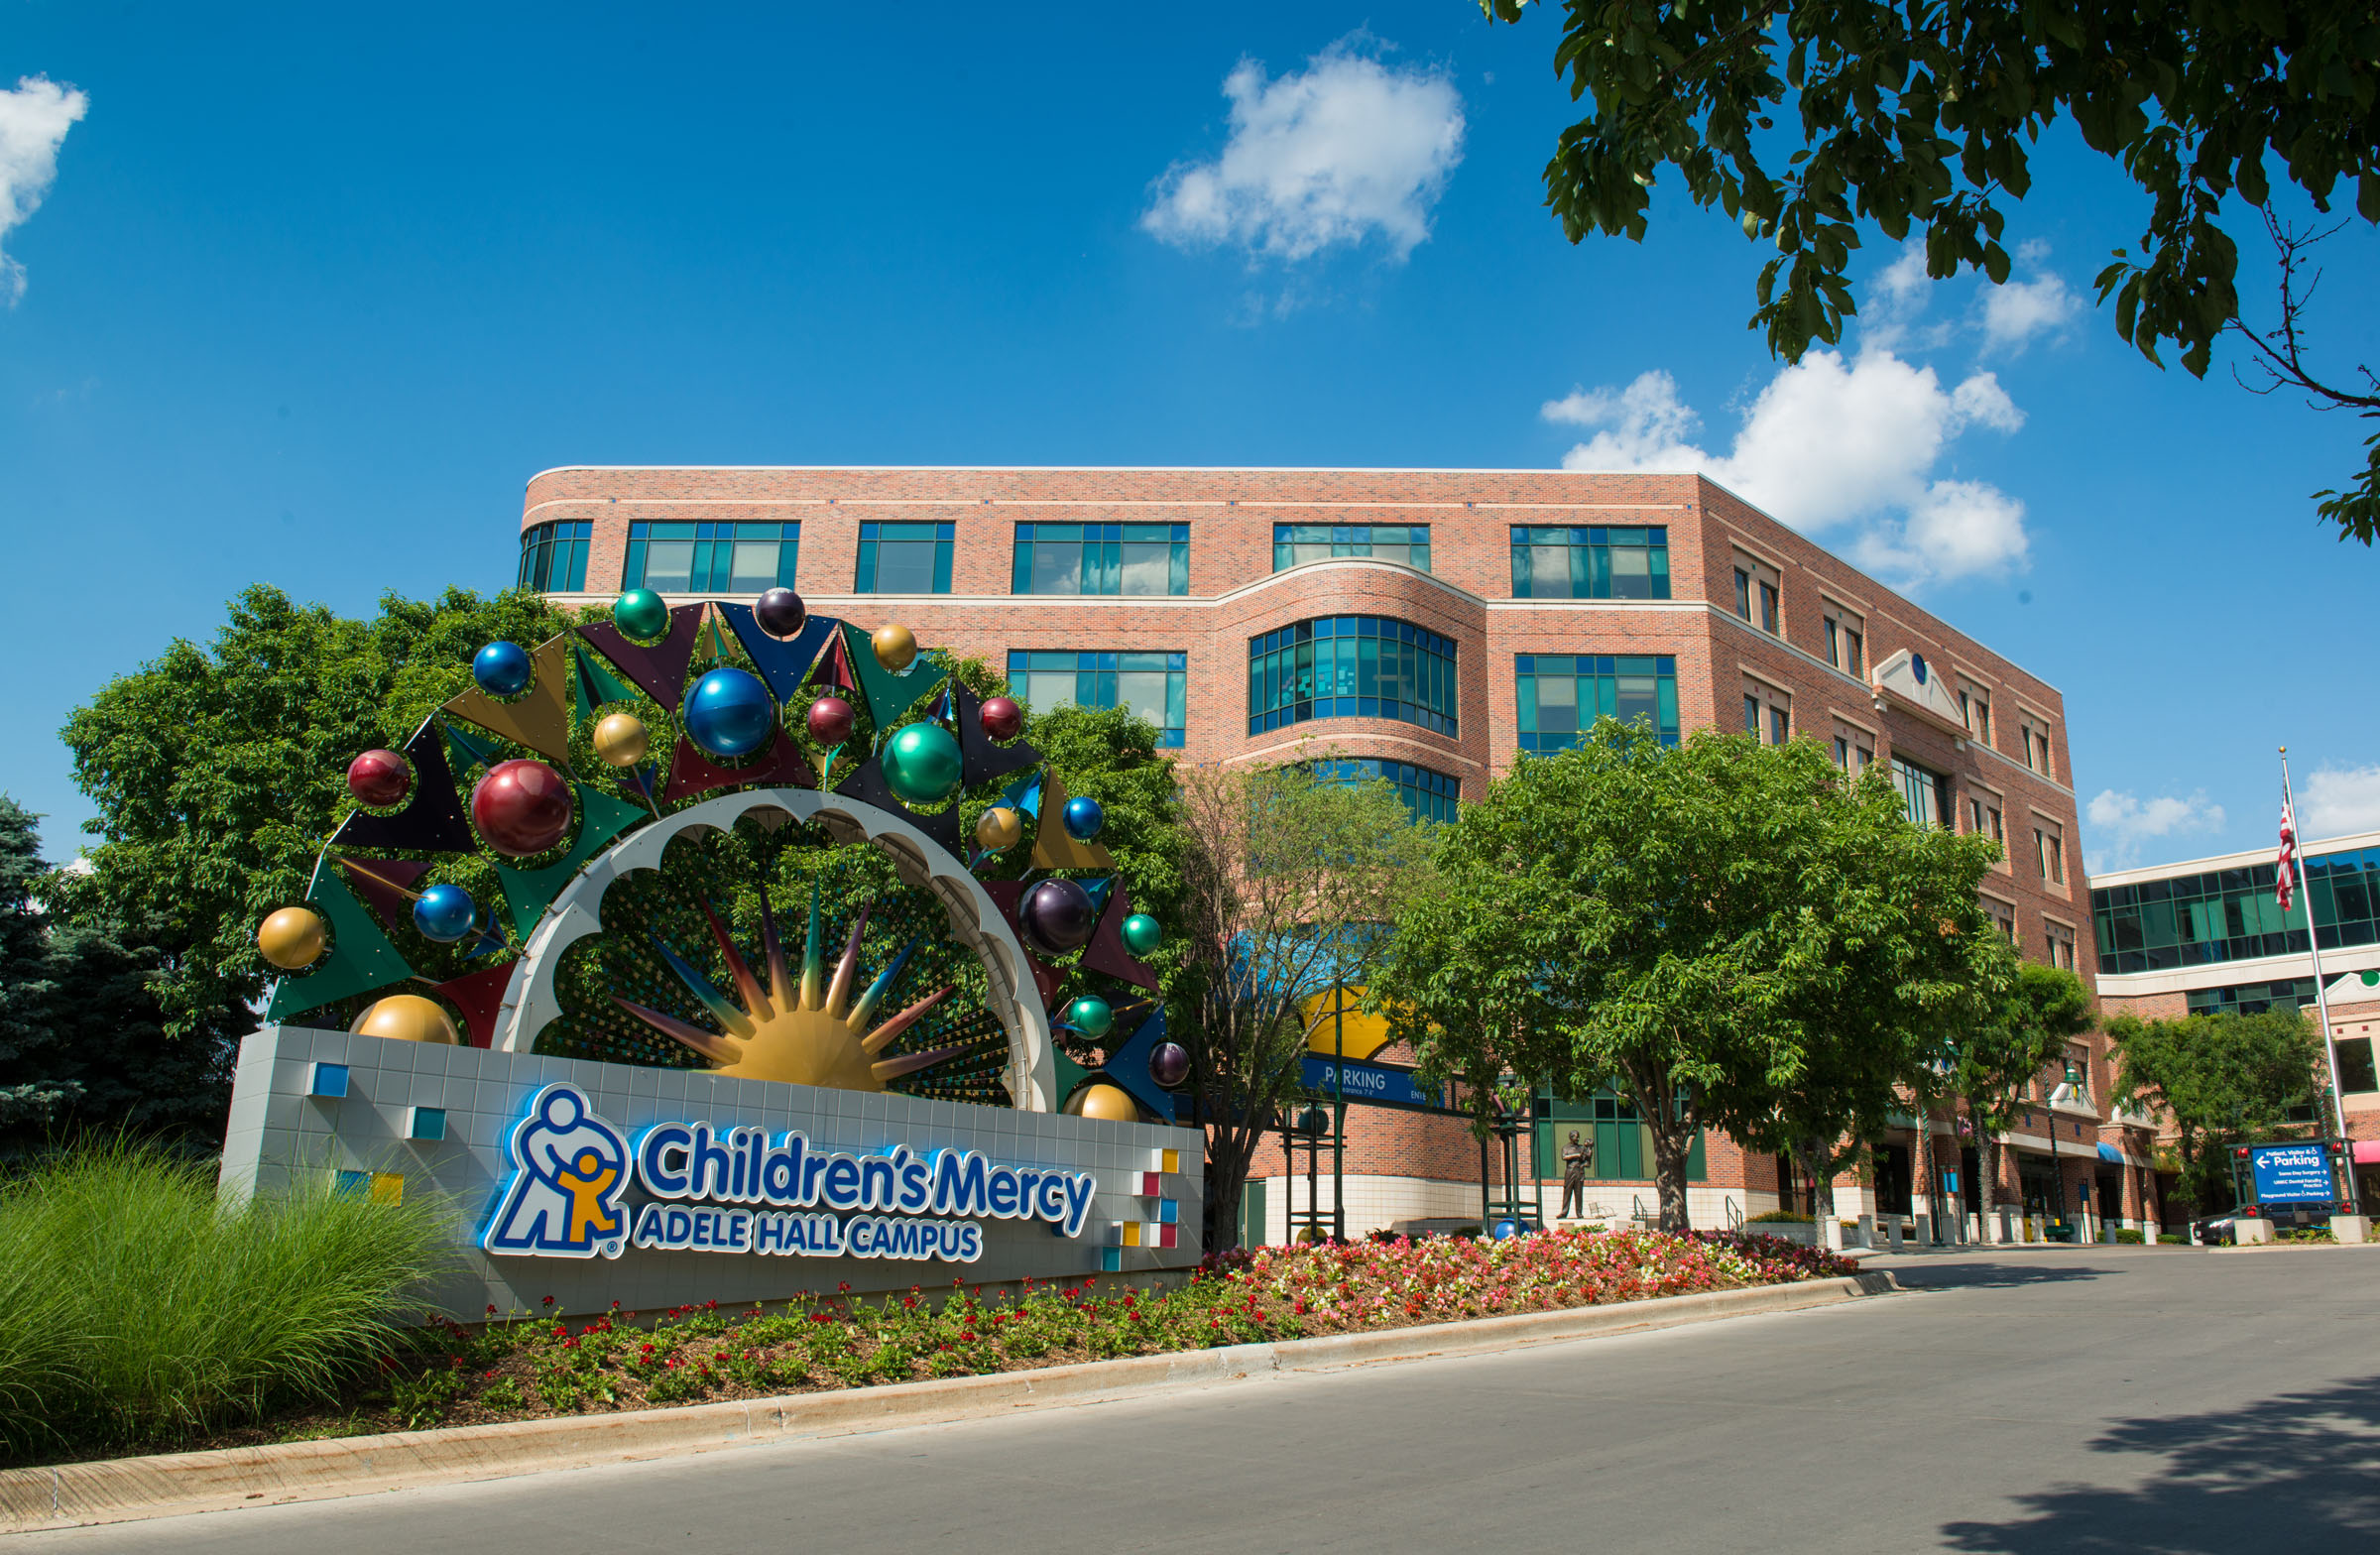 North Carolina Division Of Child Development And Early Education